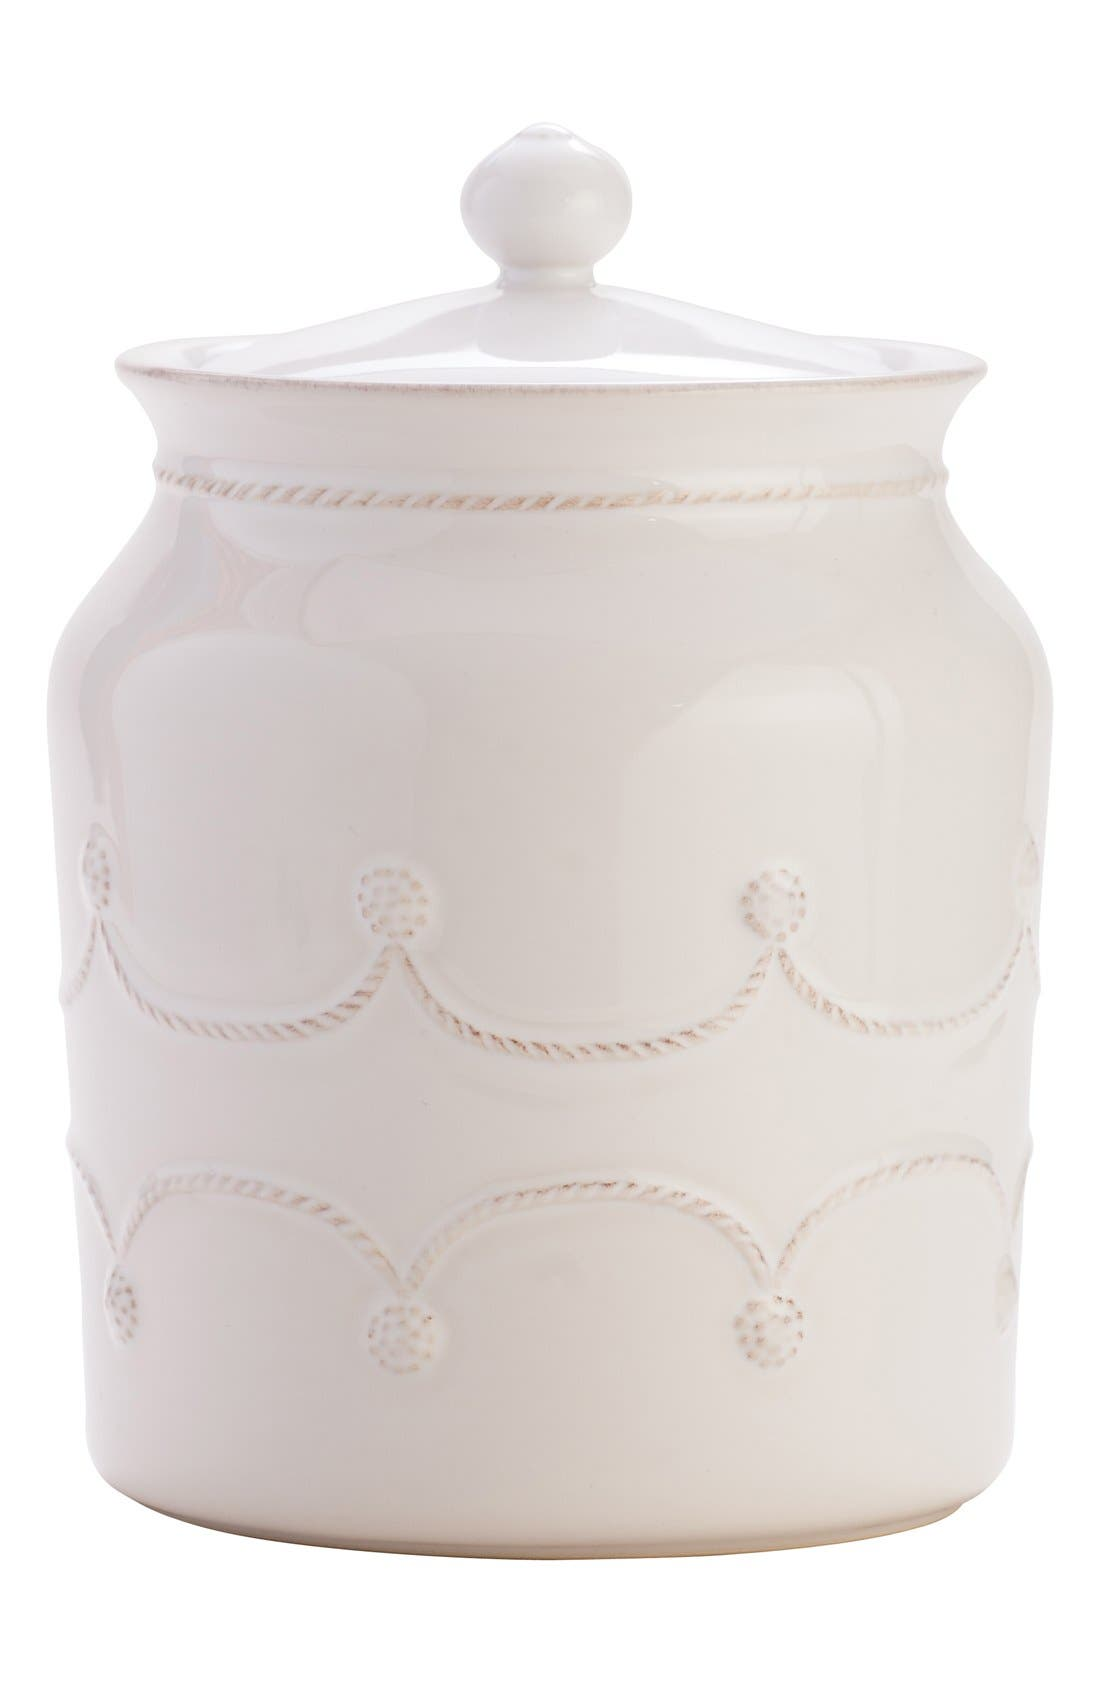 'Berry and Thread' Ceramic Cookie Jar,                         Main,                         color,